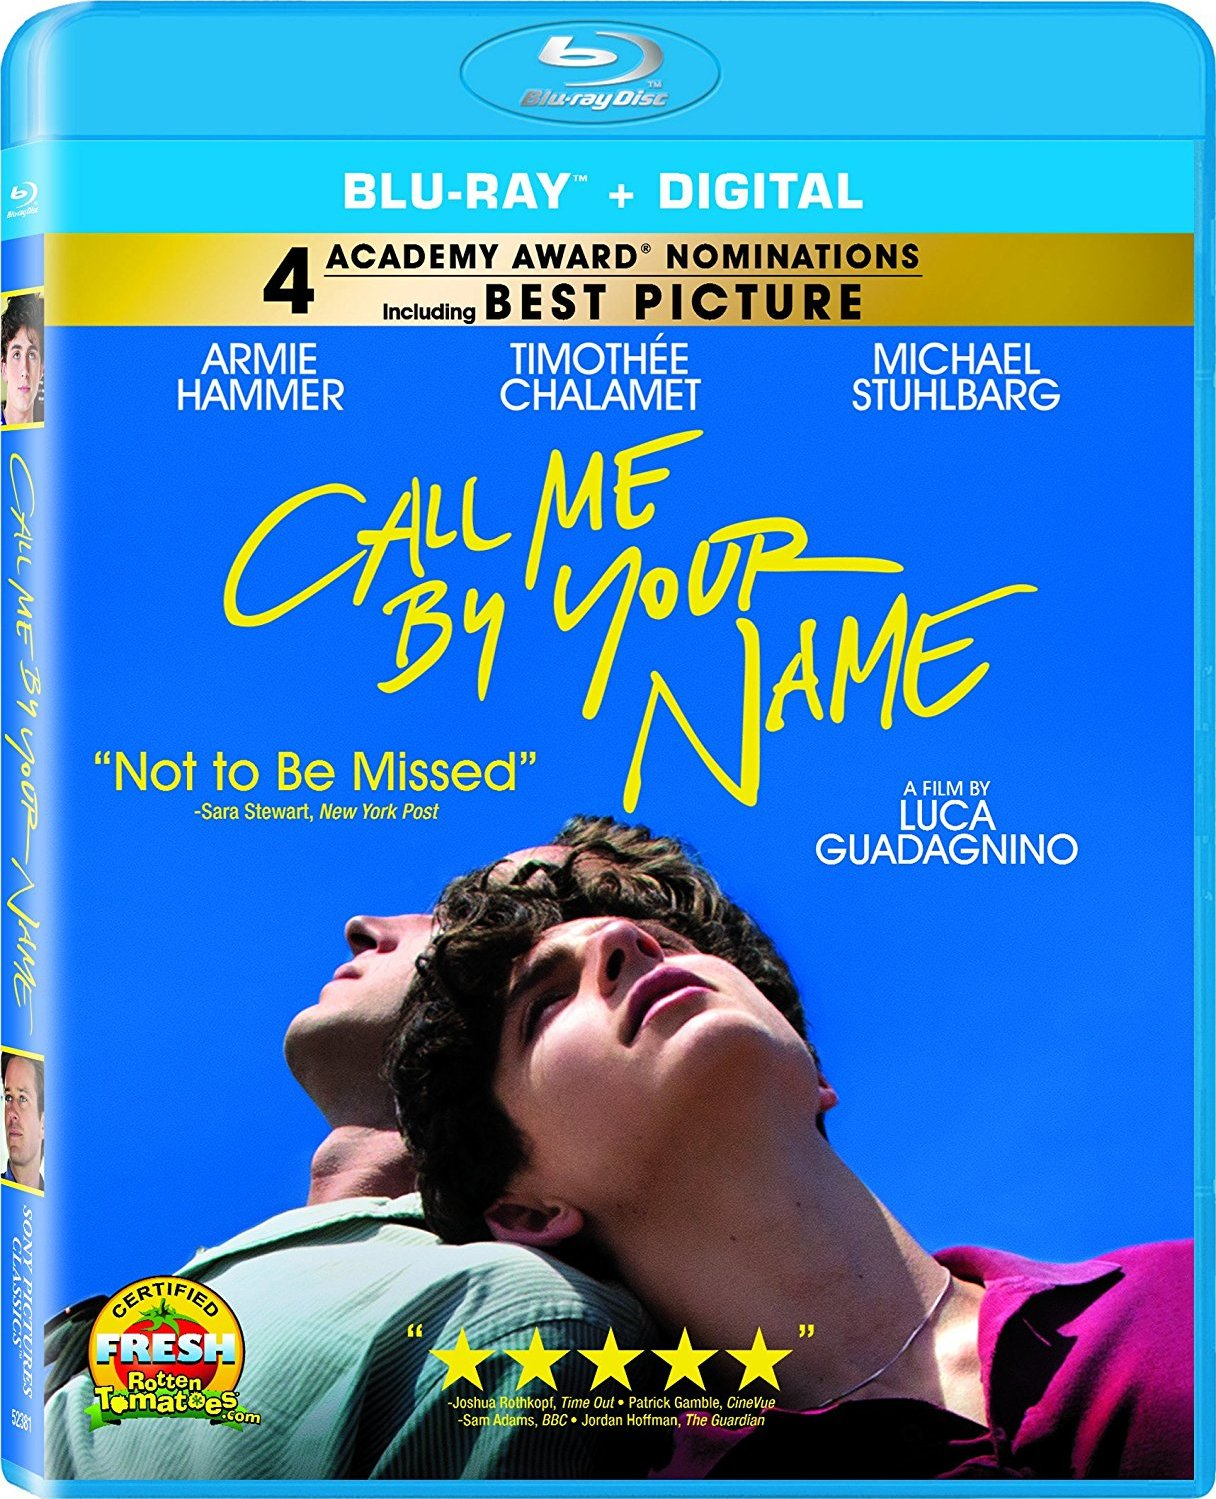 Call Me by Your Name (2017) Blu-ray